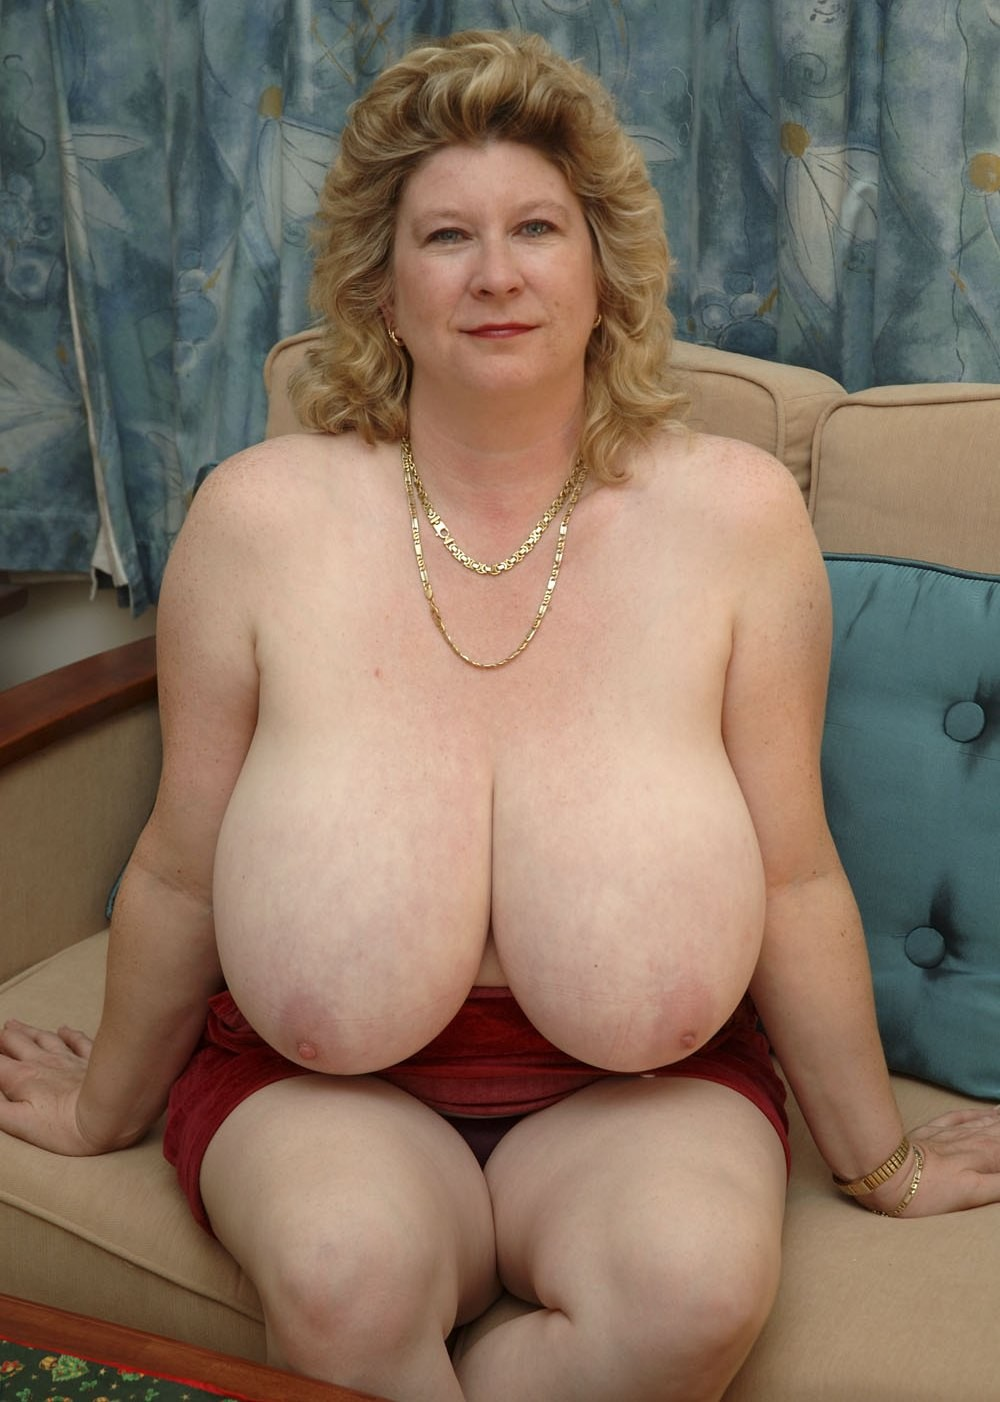 Precisely know, big milf jugs all clear